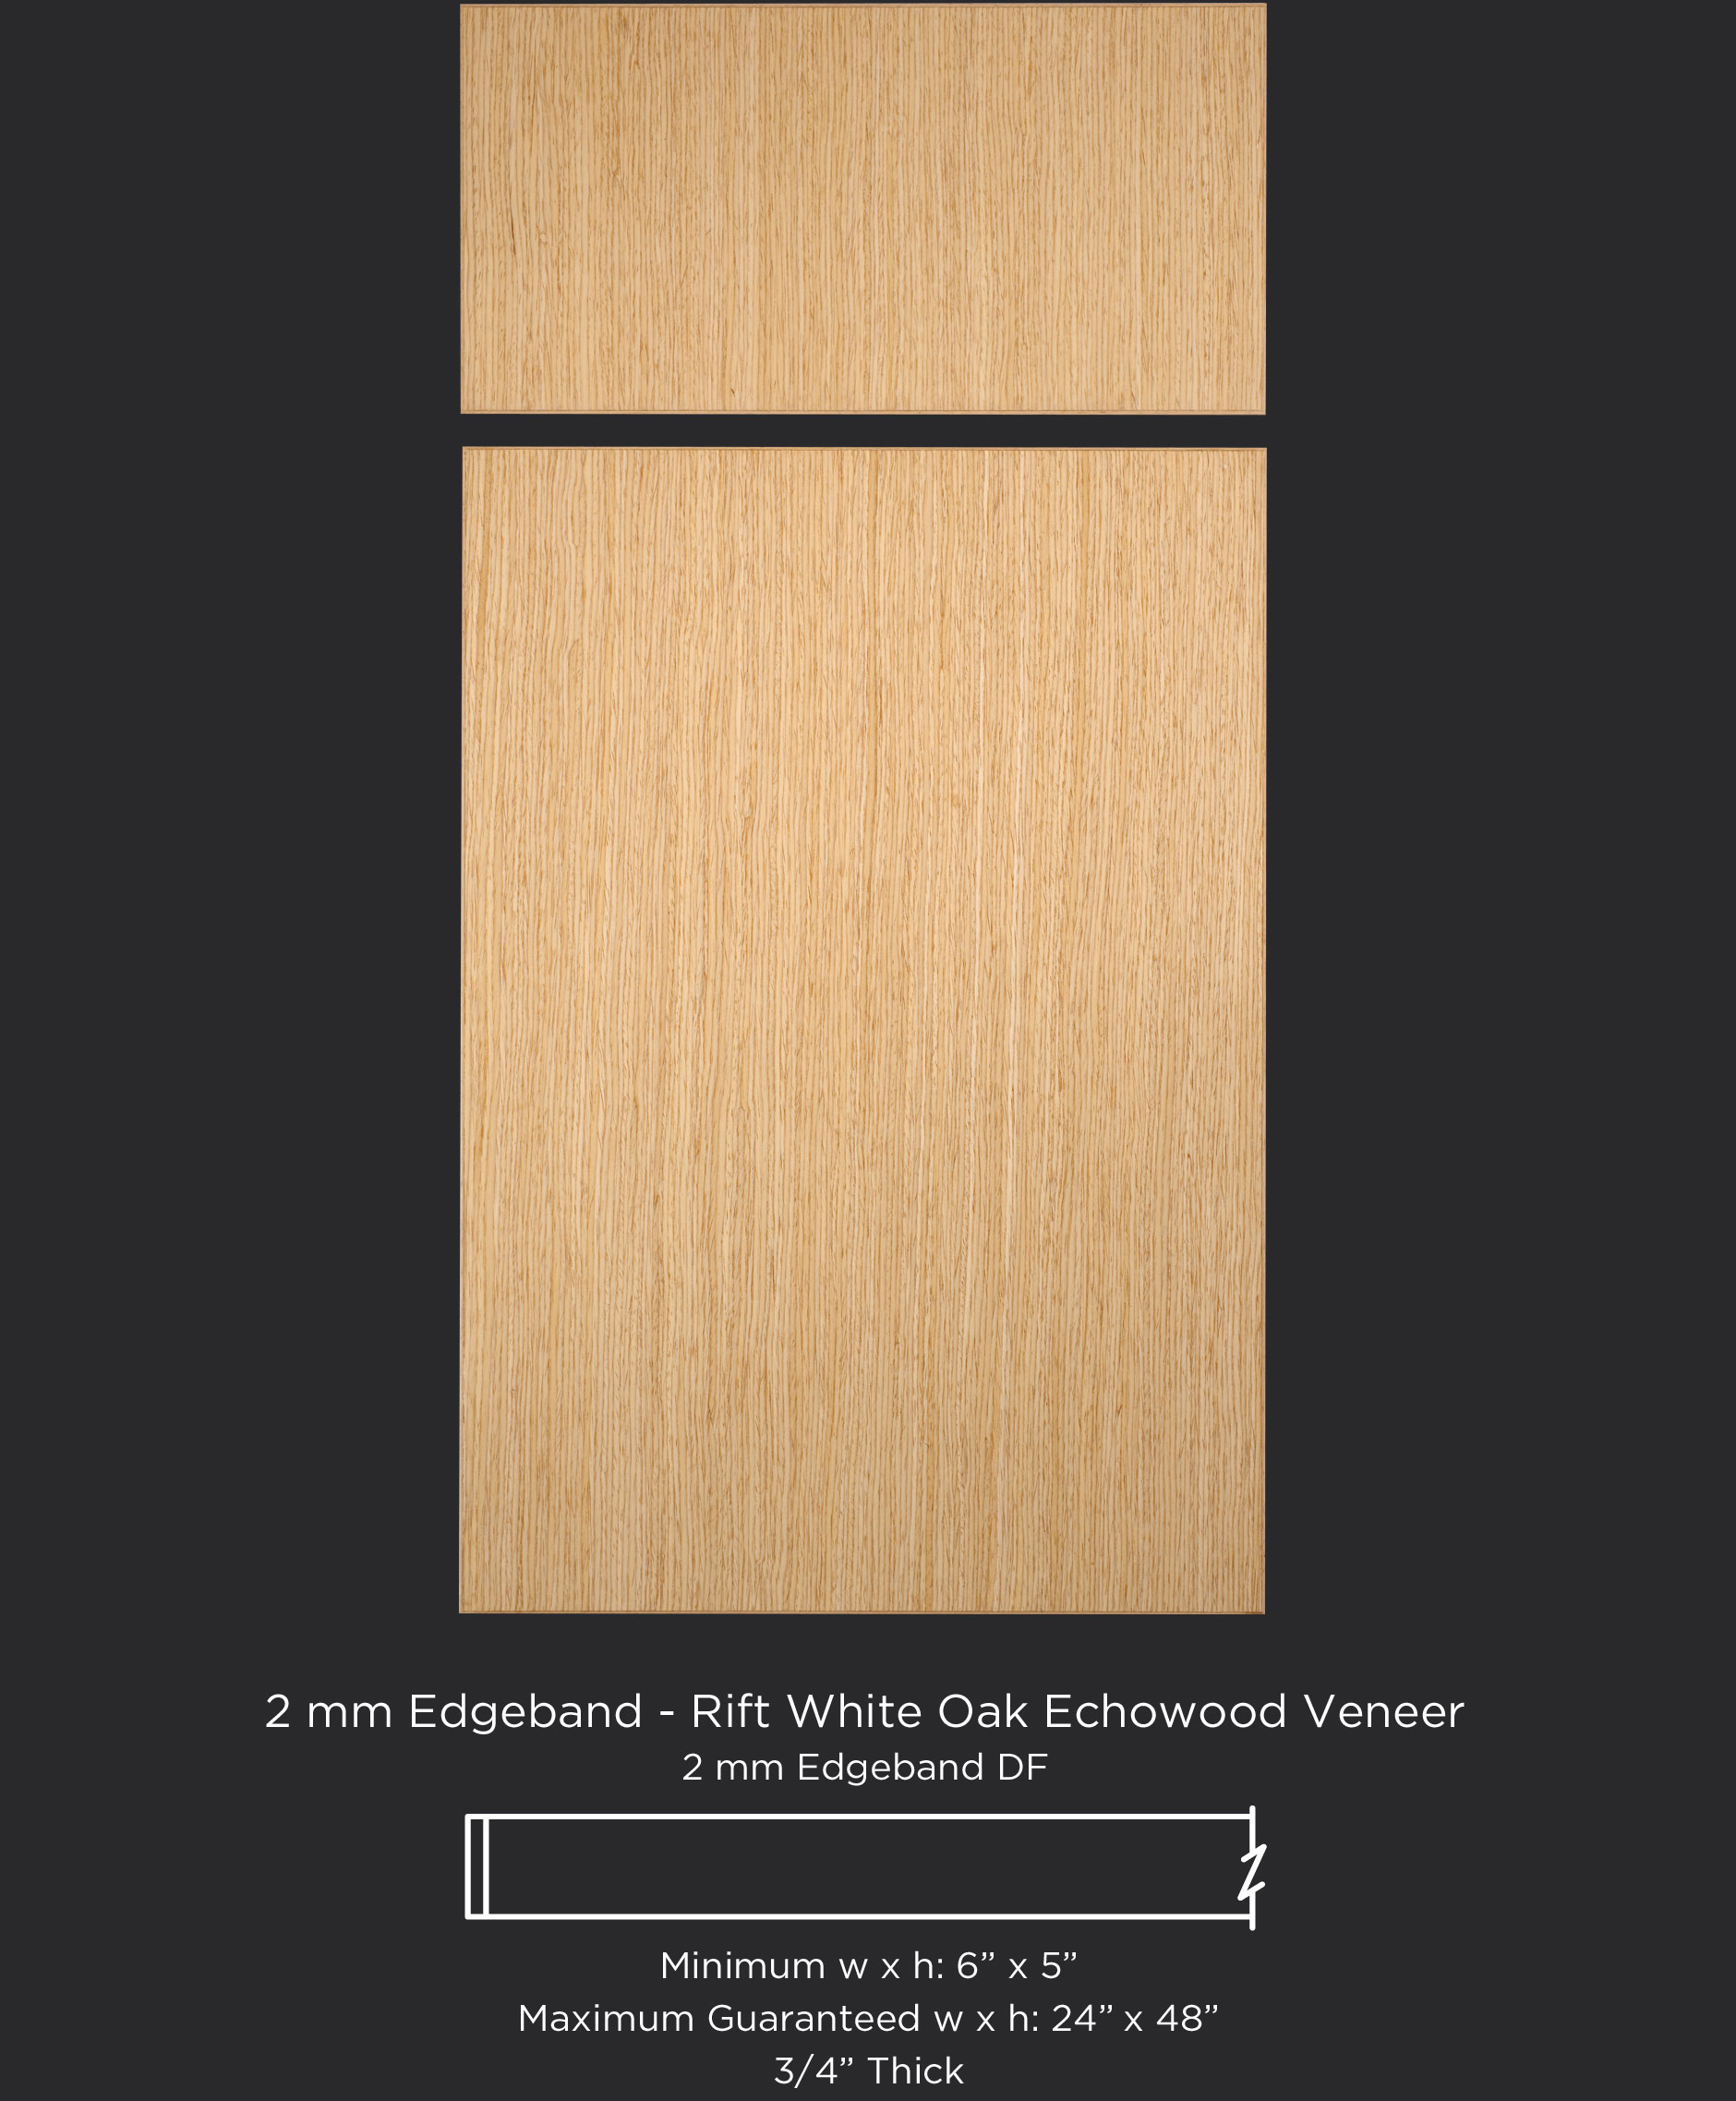 View Larger Image 2mm Edgebanded Door And Drawer Front In Rift White Oak Echowood Veneer